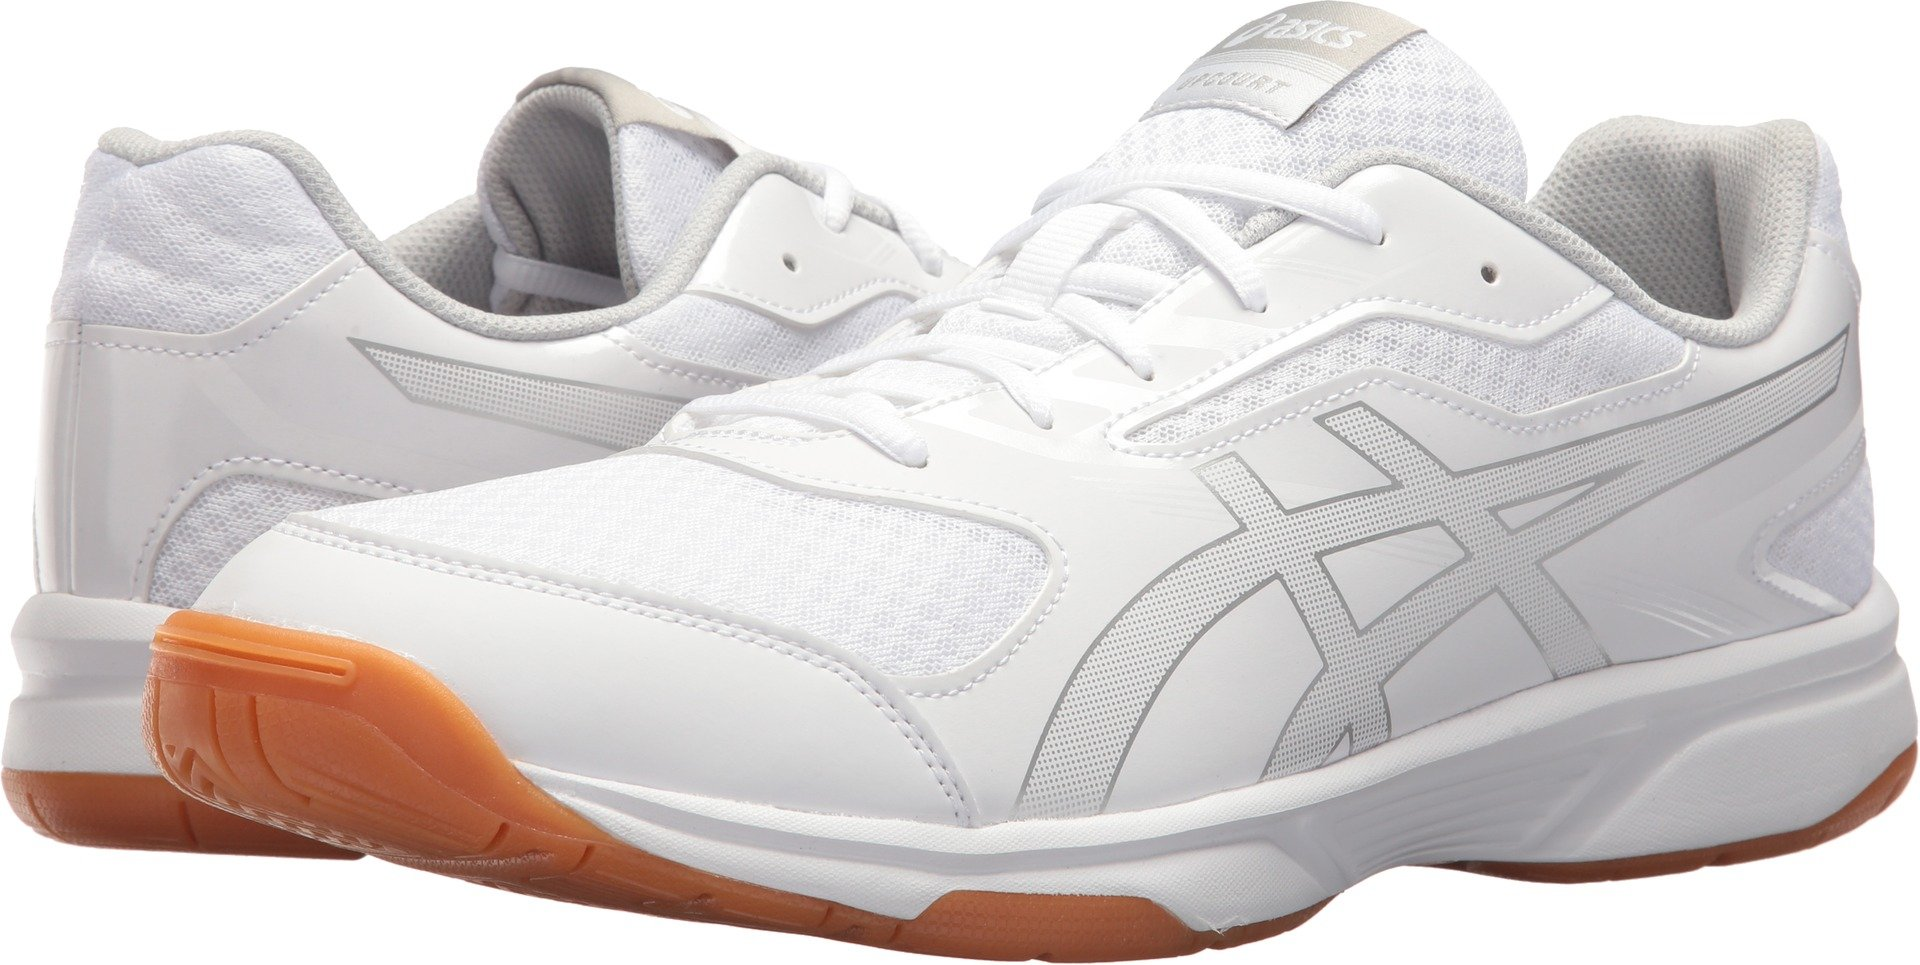 ASICS Men's Upcourt 2 Volleyball Shoe - B705Y.0193 (White/Silver - 6.5) by ASICS